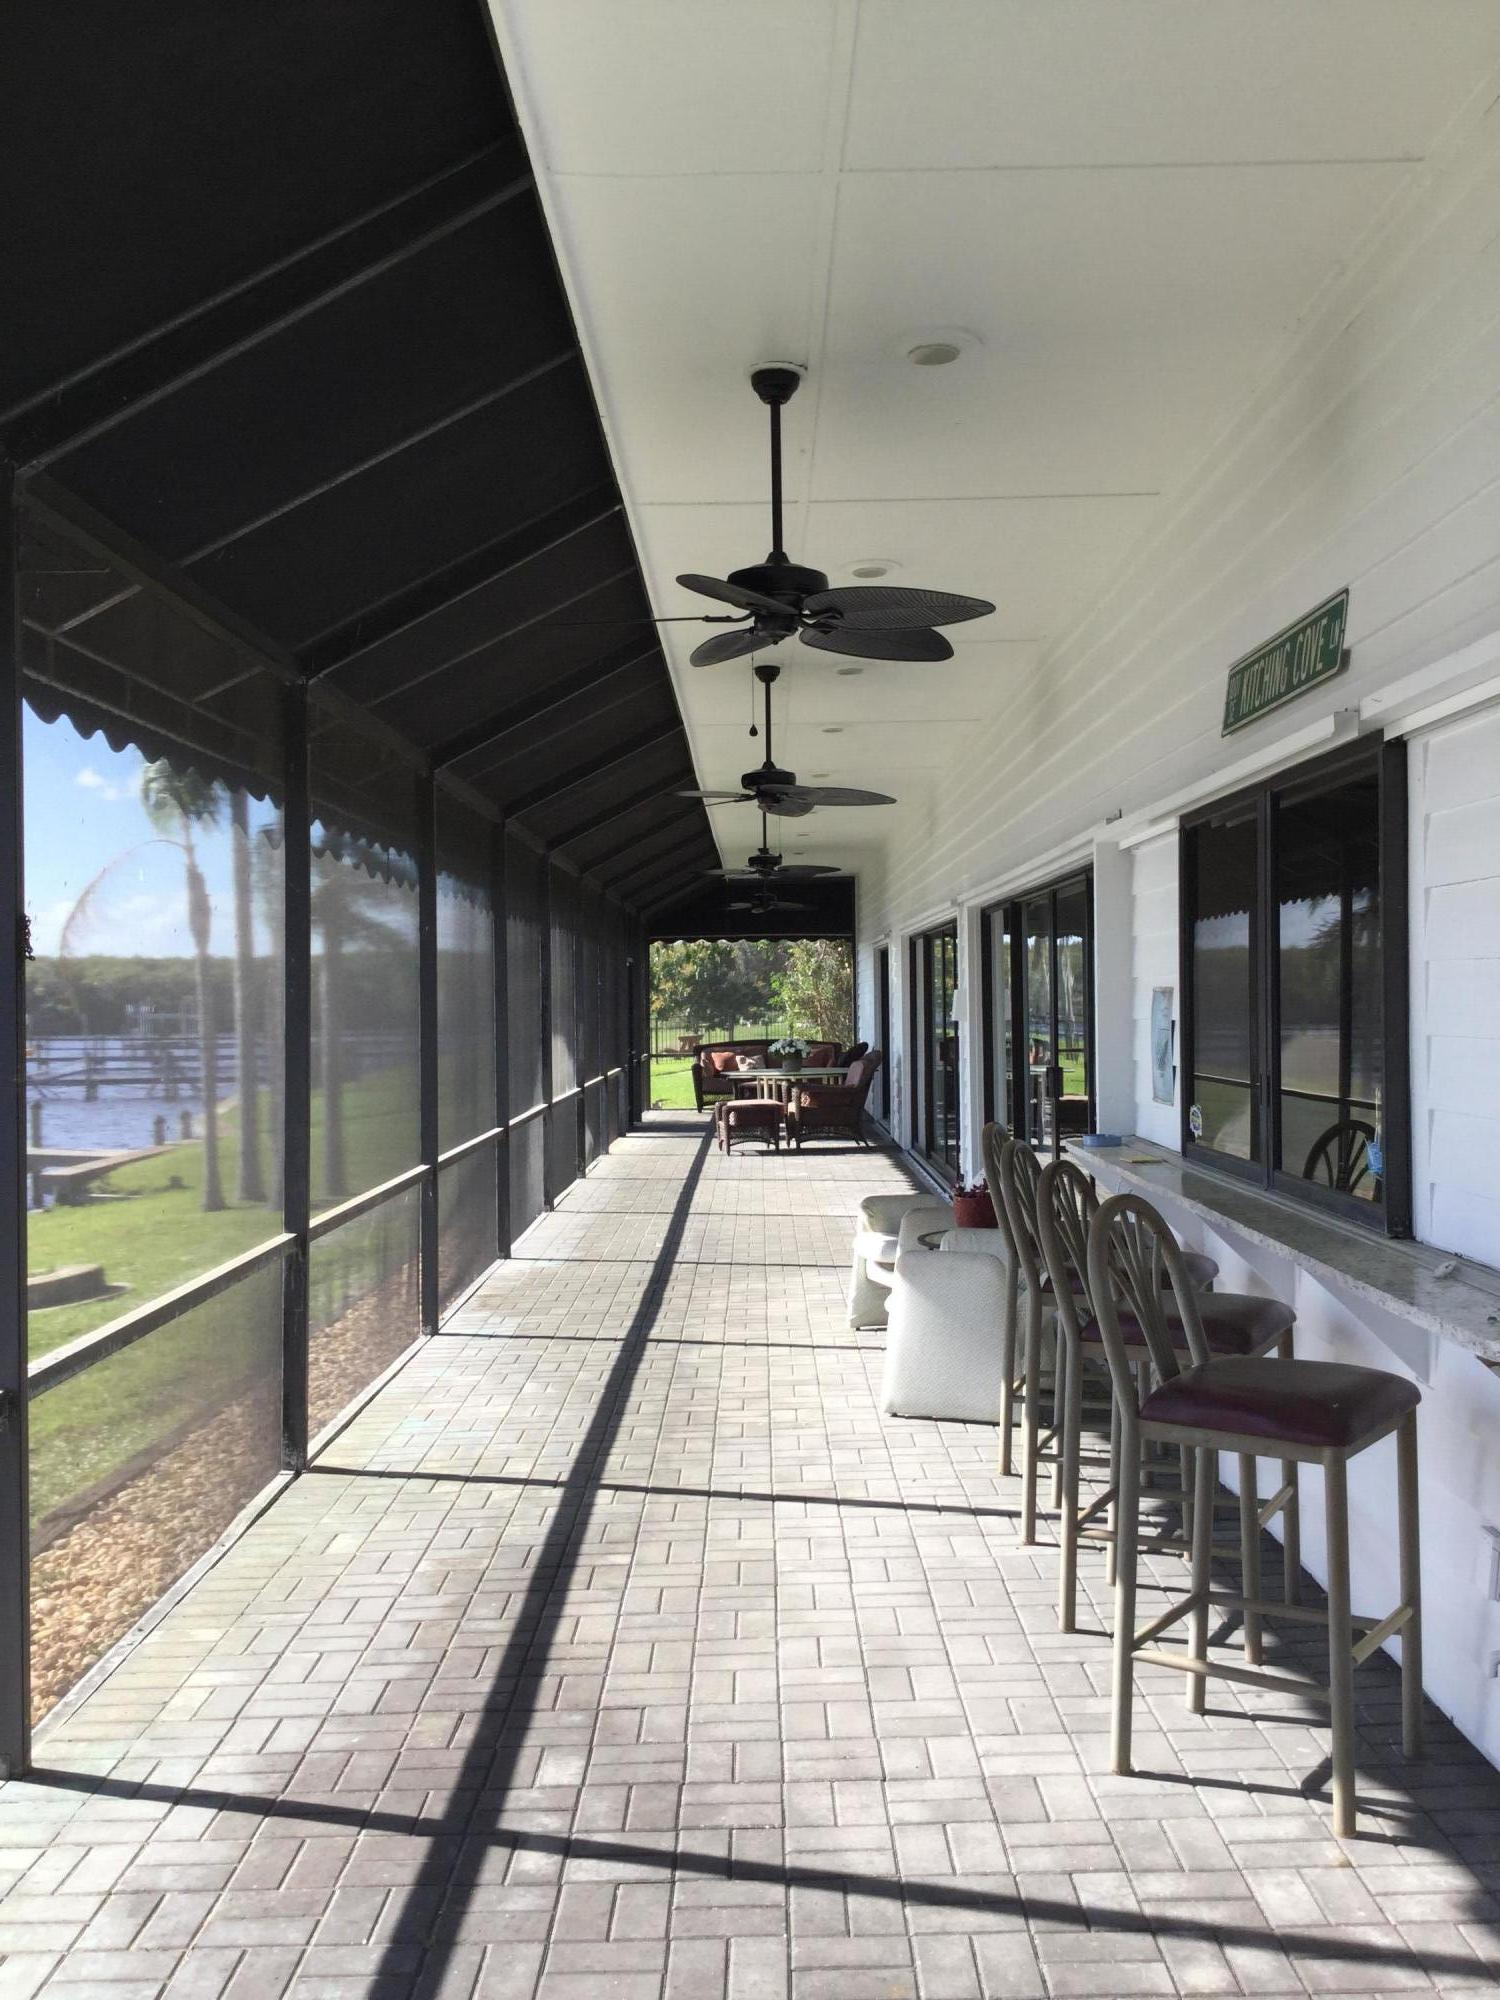 KITCHING COVE ESTATES PORT SAINT LUCIE REAL ESTATE